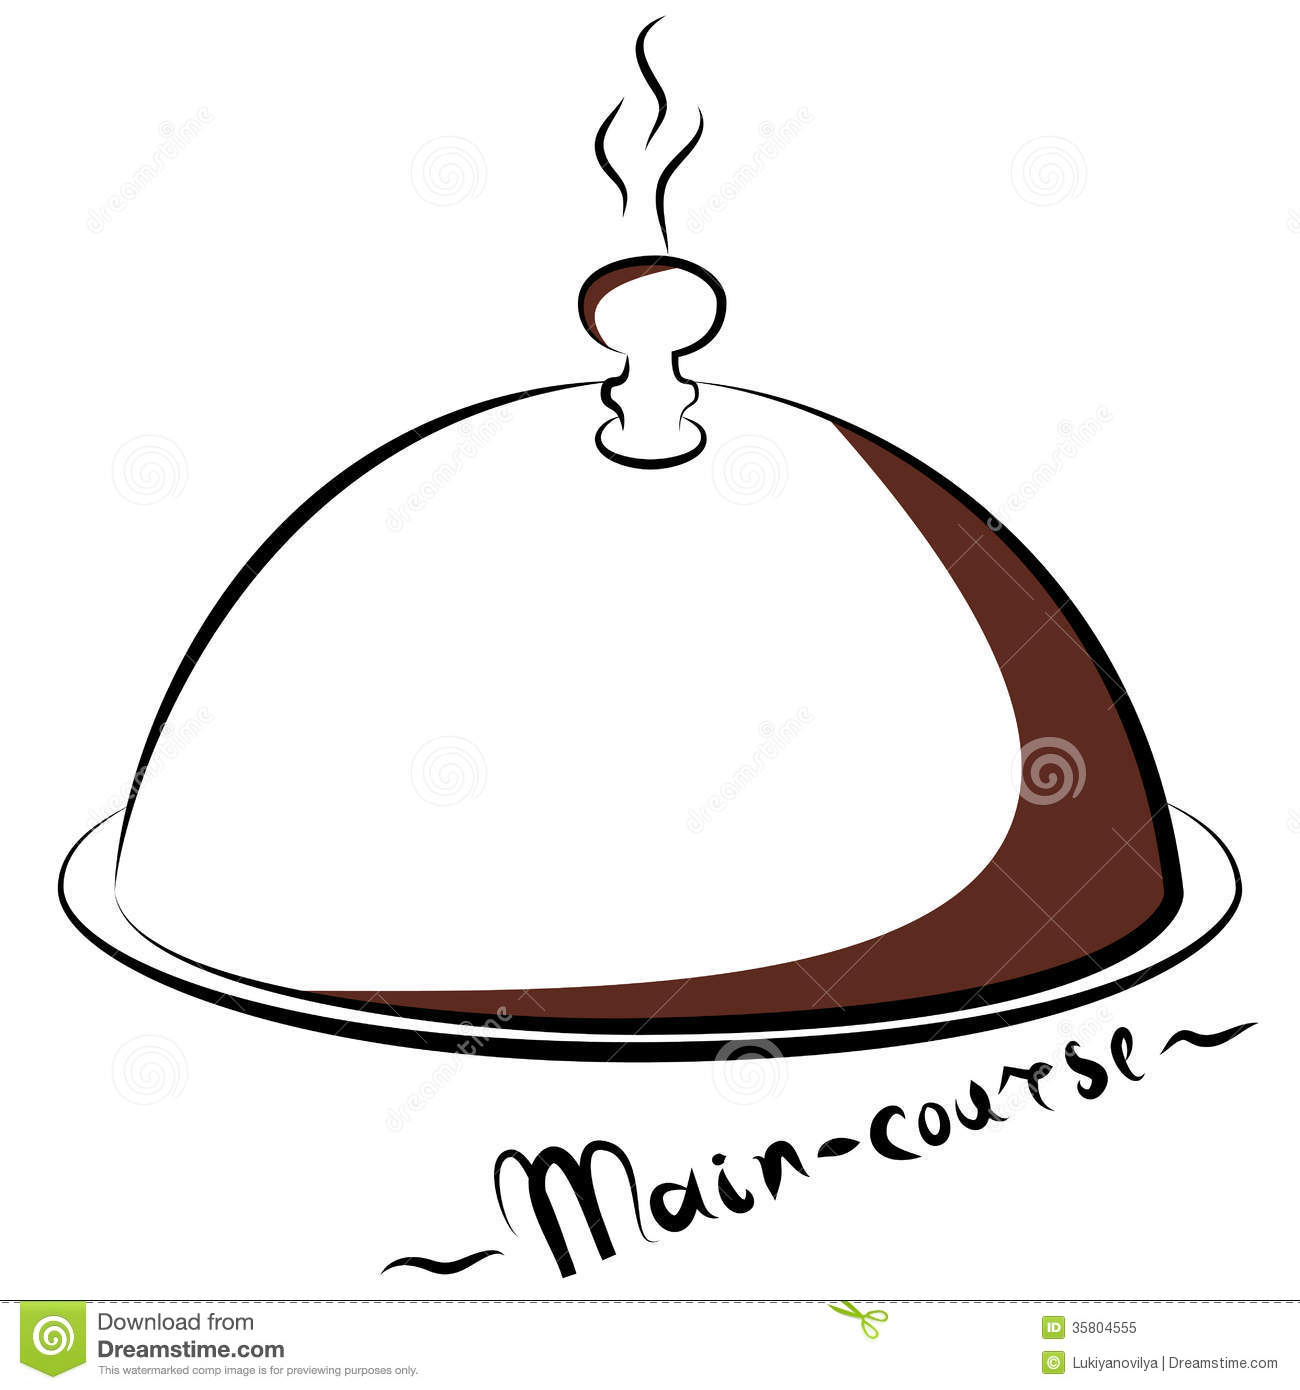 Abstract Silhouette Of Main-Course. Royalty Free Stock Photo ...